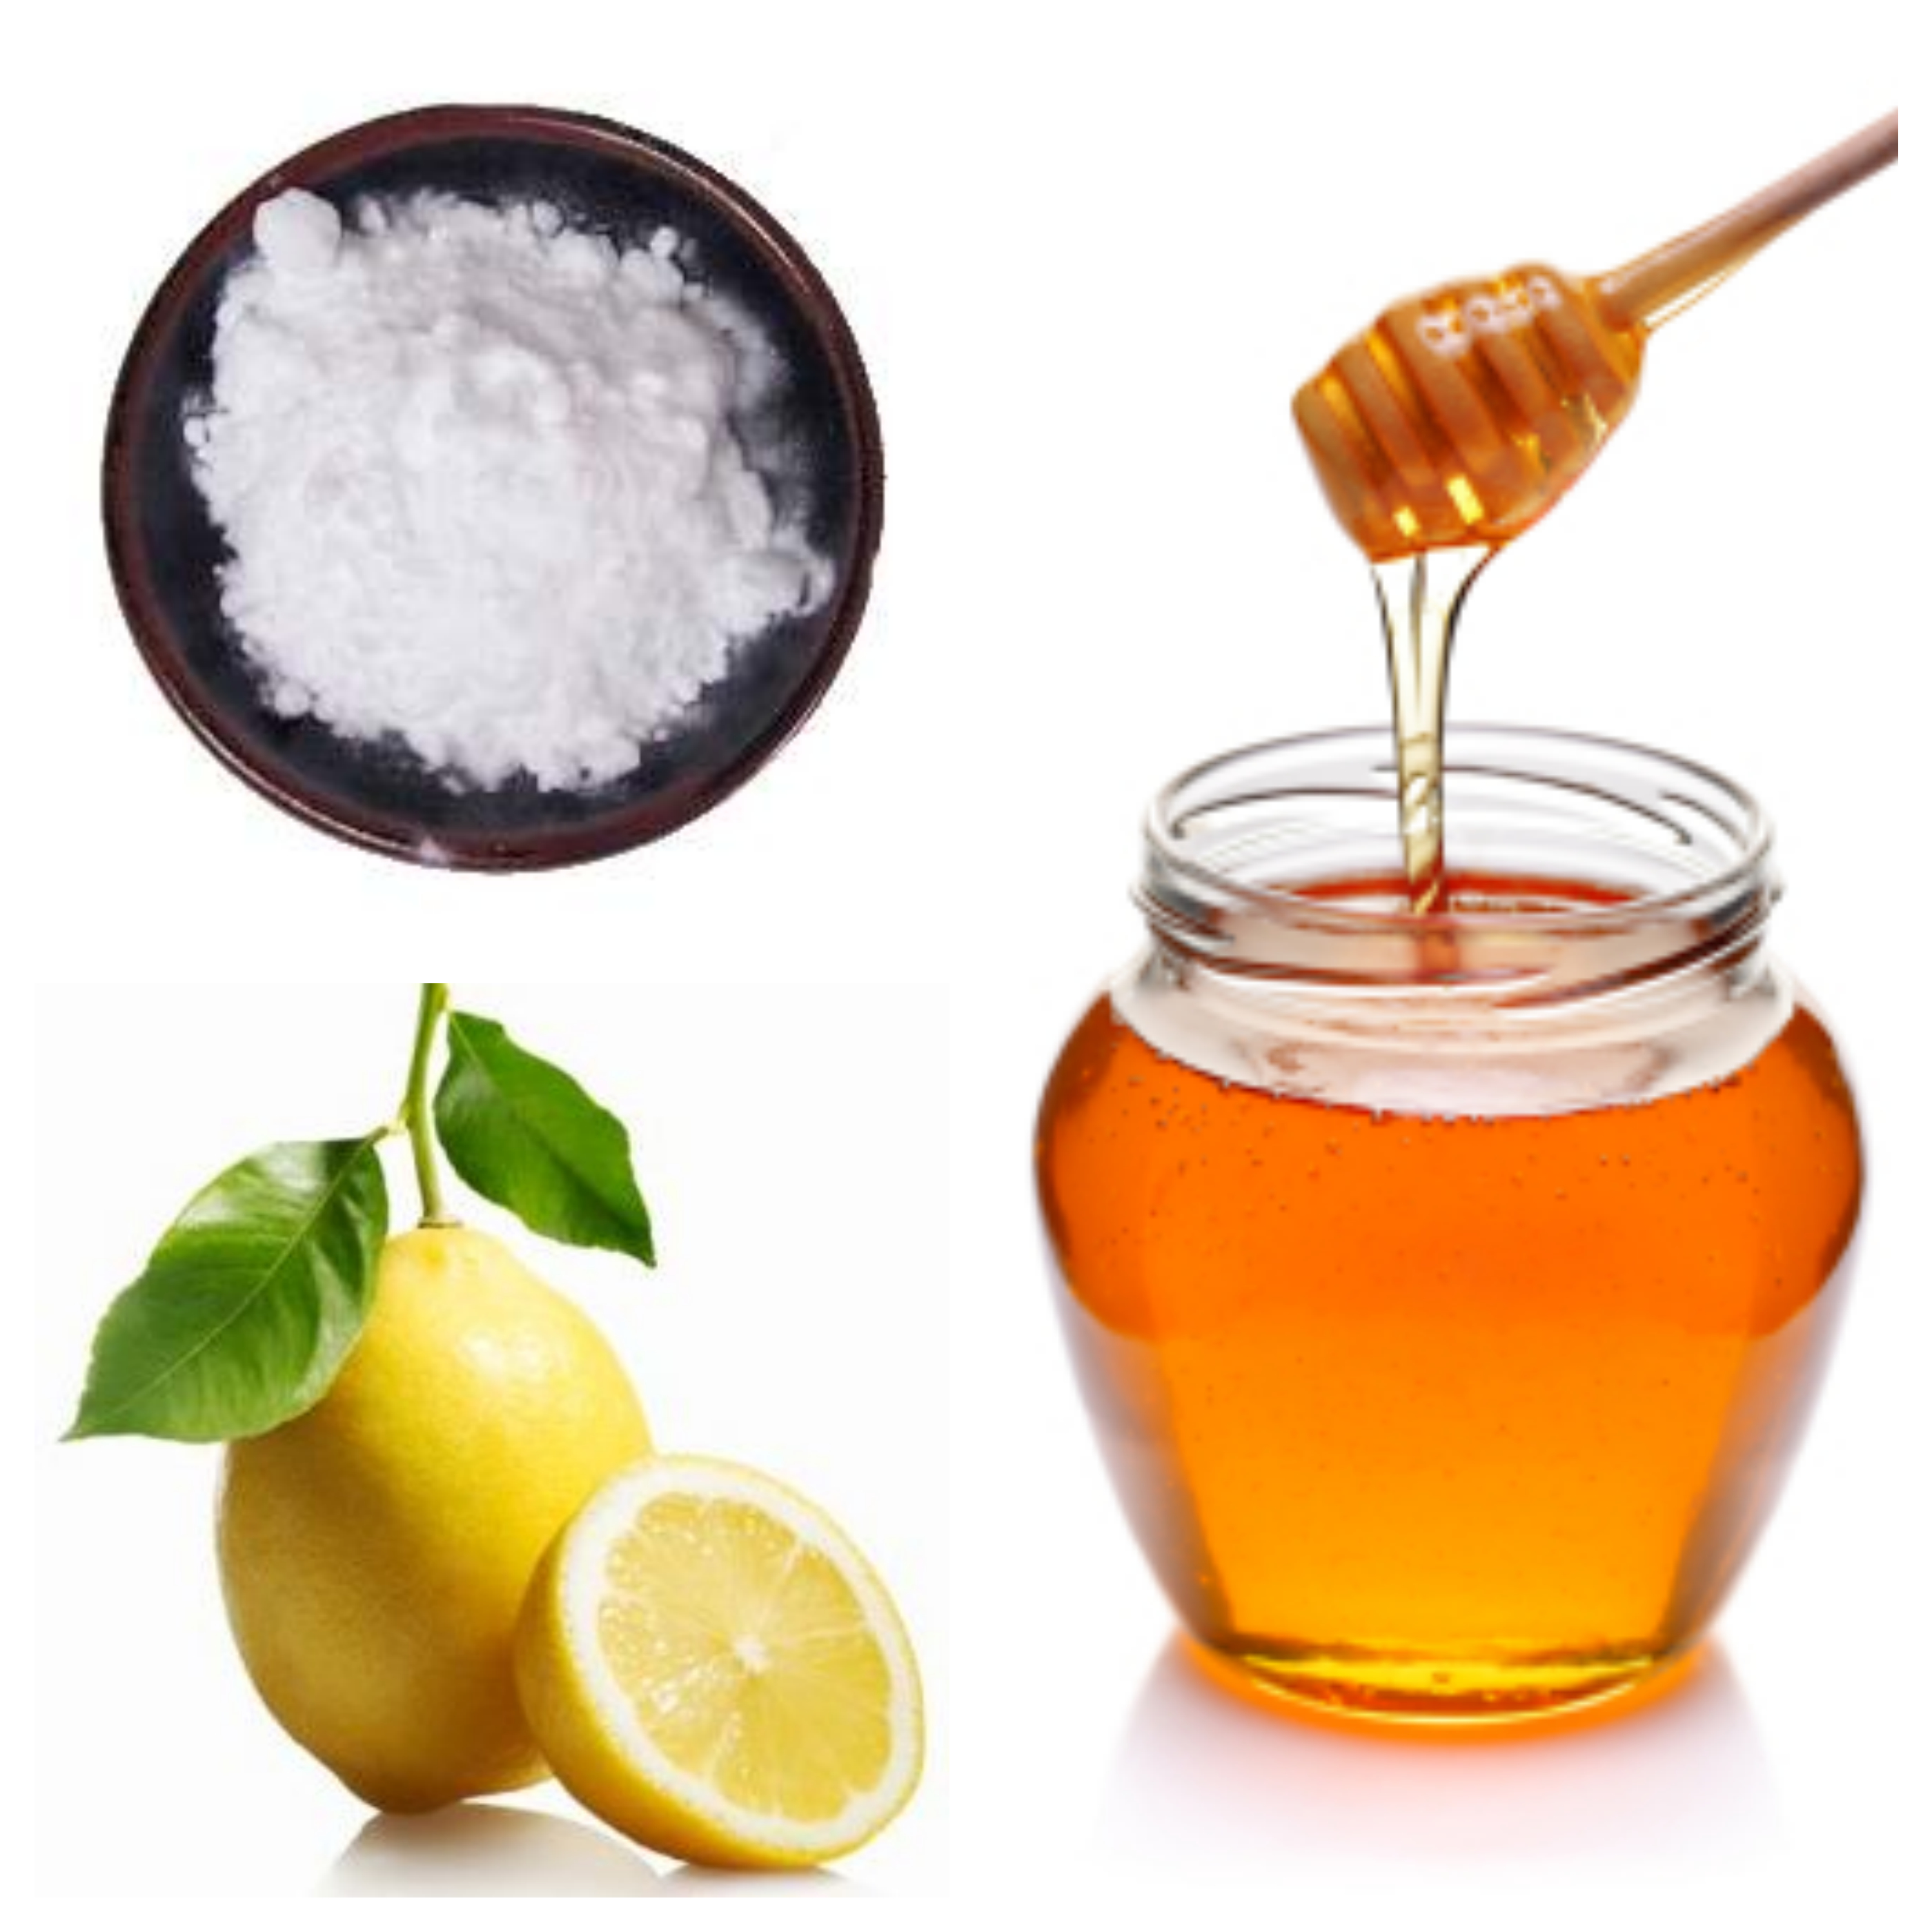 7 Amazing homemade beauty tips for oily face | Indian ...